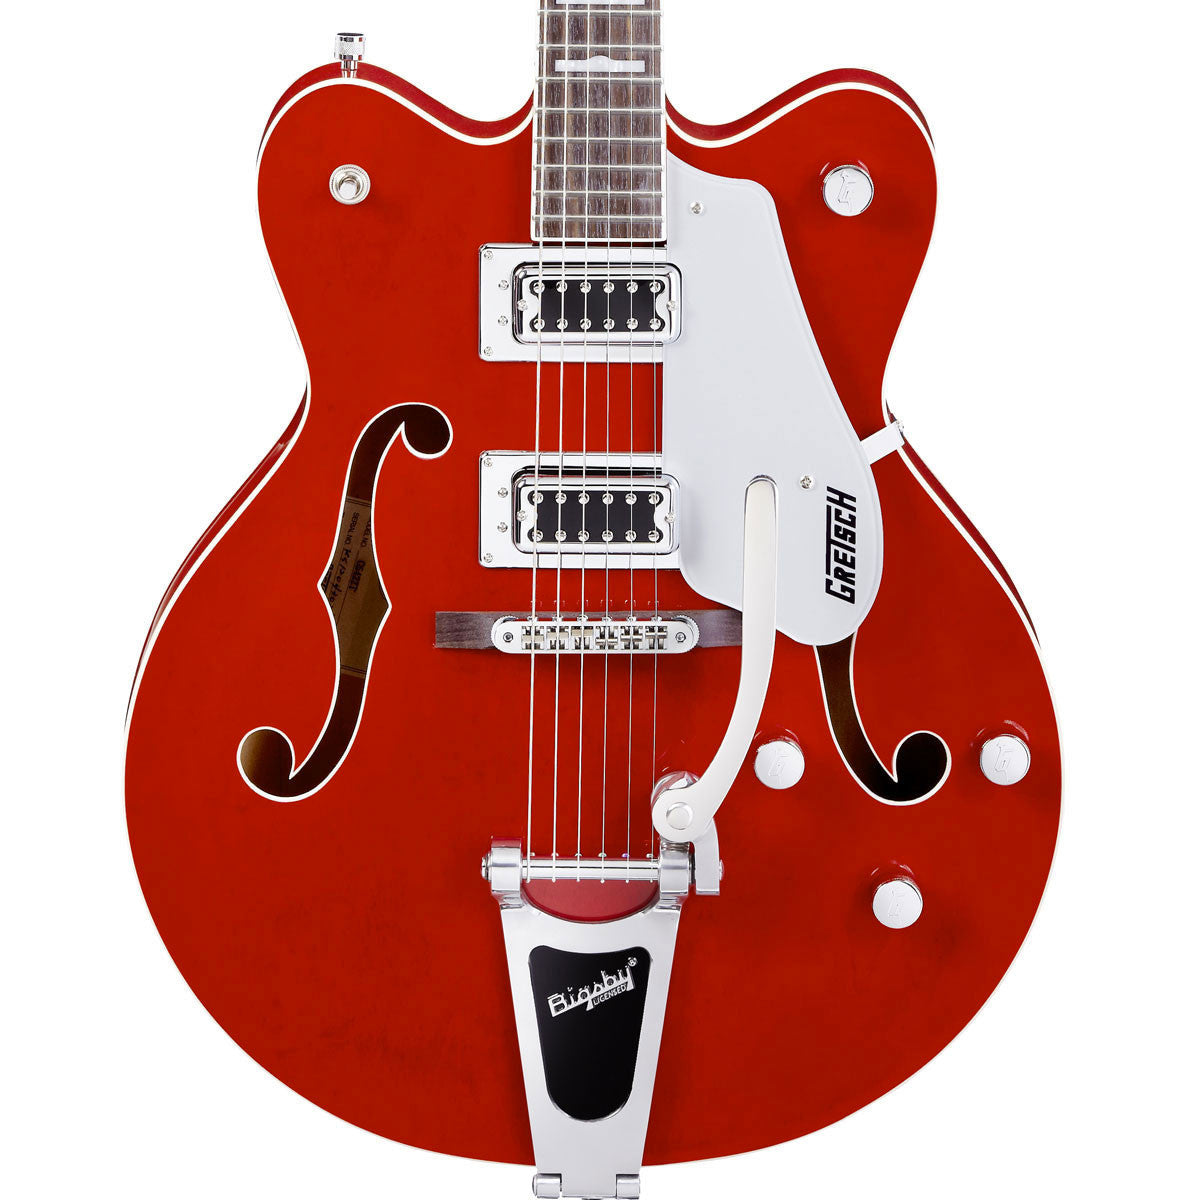 Gretsch G5422TDC - Electromatic Double Cut Hollow Body w/Bigsby - Transparent Red - Vintage Guitar Boutique - 1